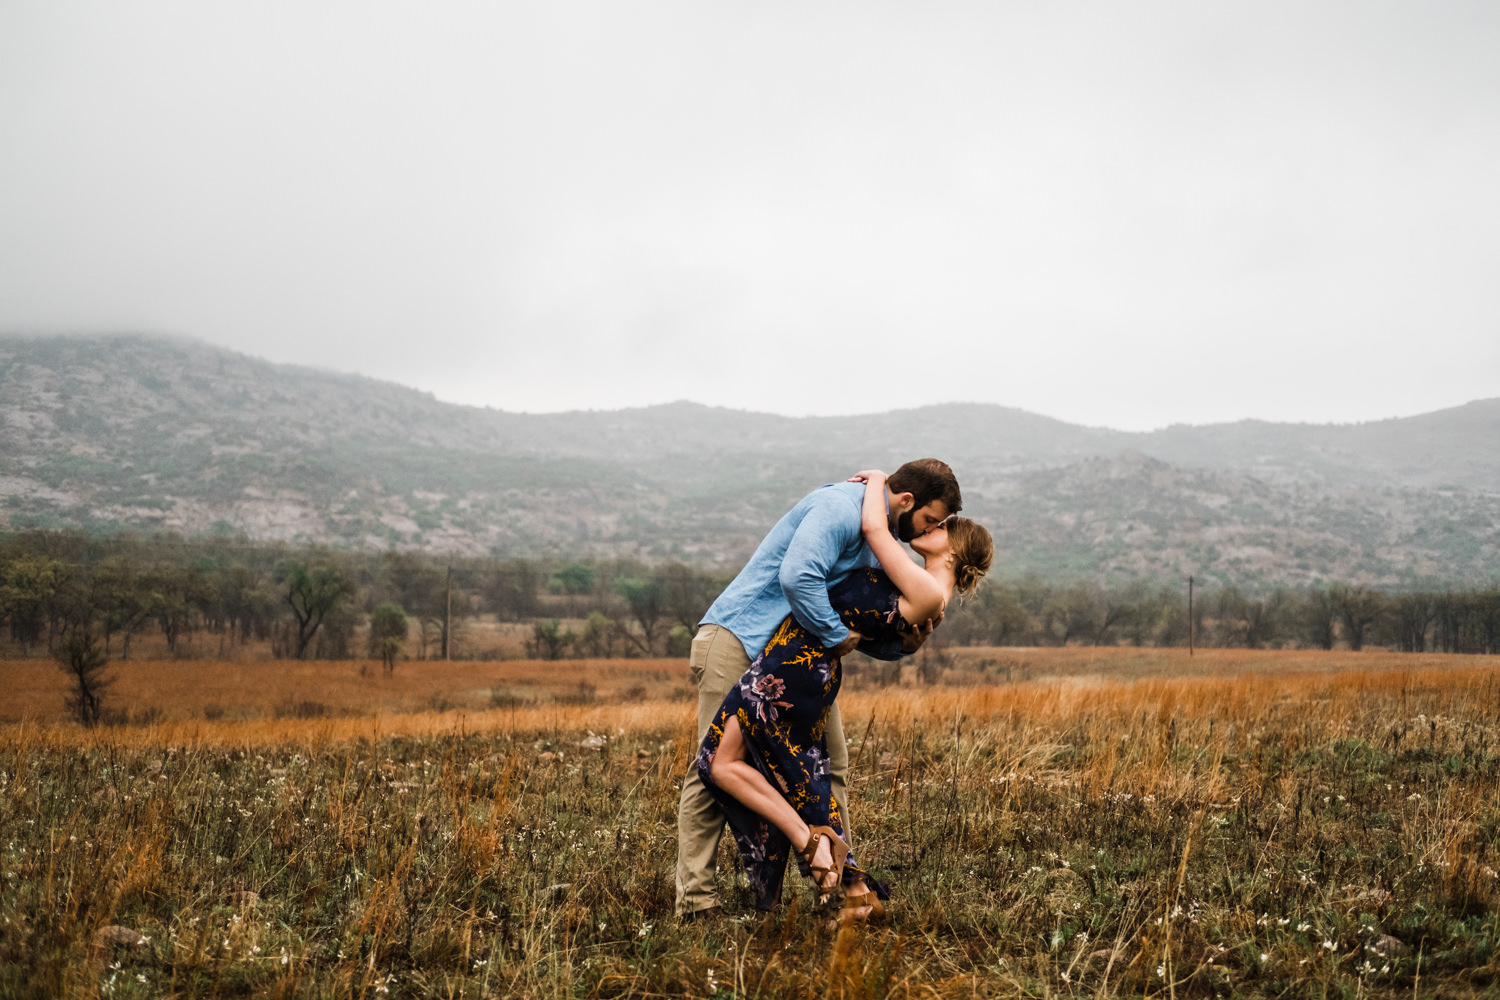 Oklahoma Engagement-Neal Dieker-Oklahoma Wedding Photography-Wichita Mountains-Wichita, Kansas Portrait Photographer-192.jpg